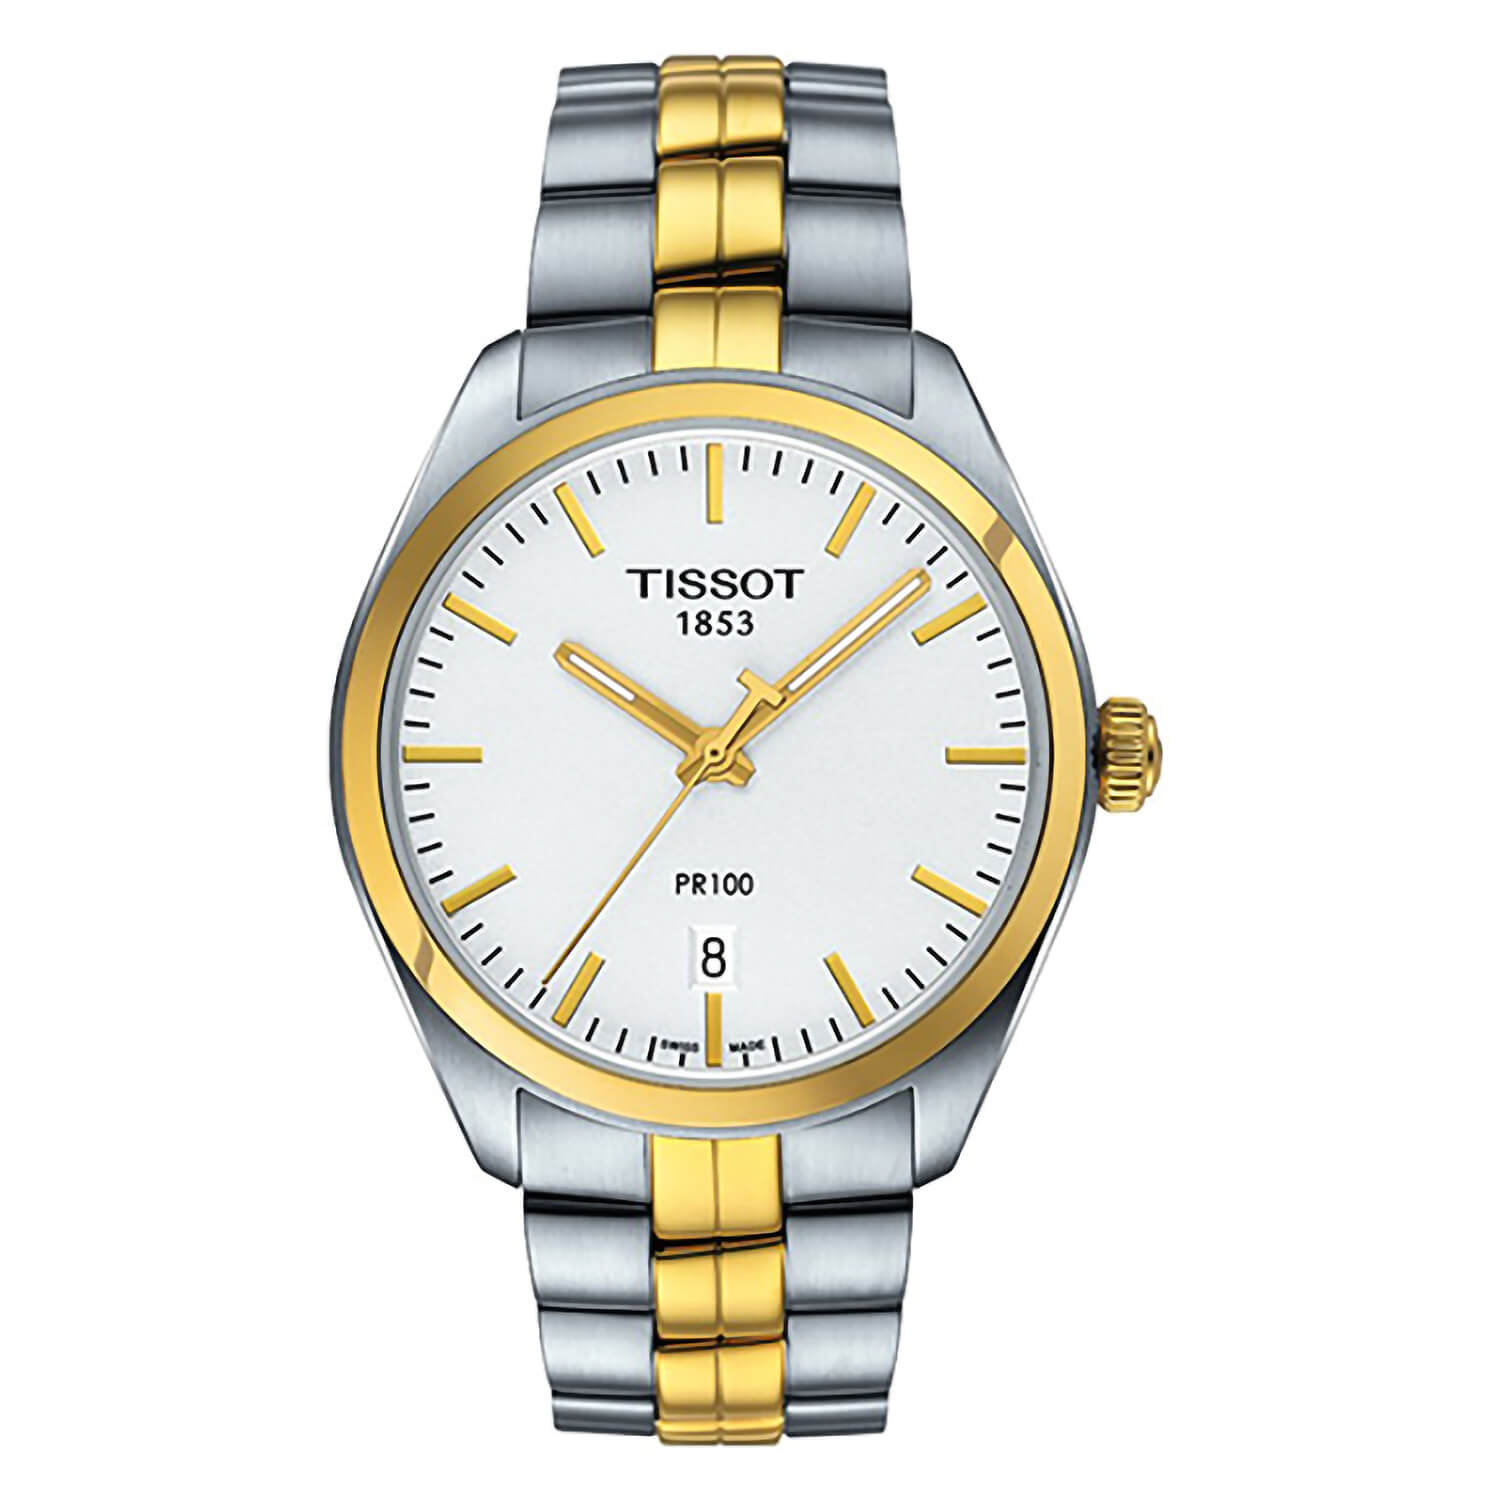 Tissot PR 100 men's white dial two-tone bracelet watch